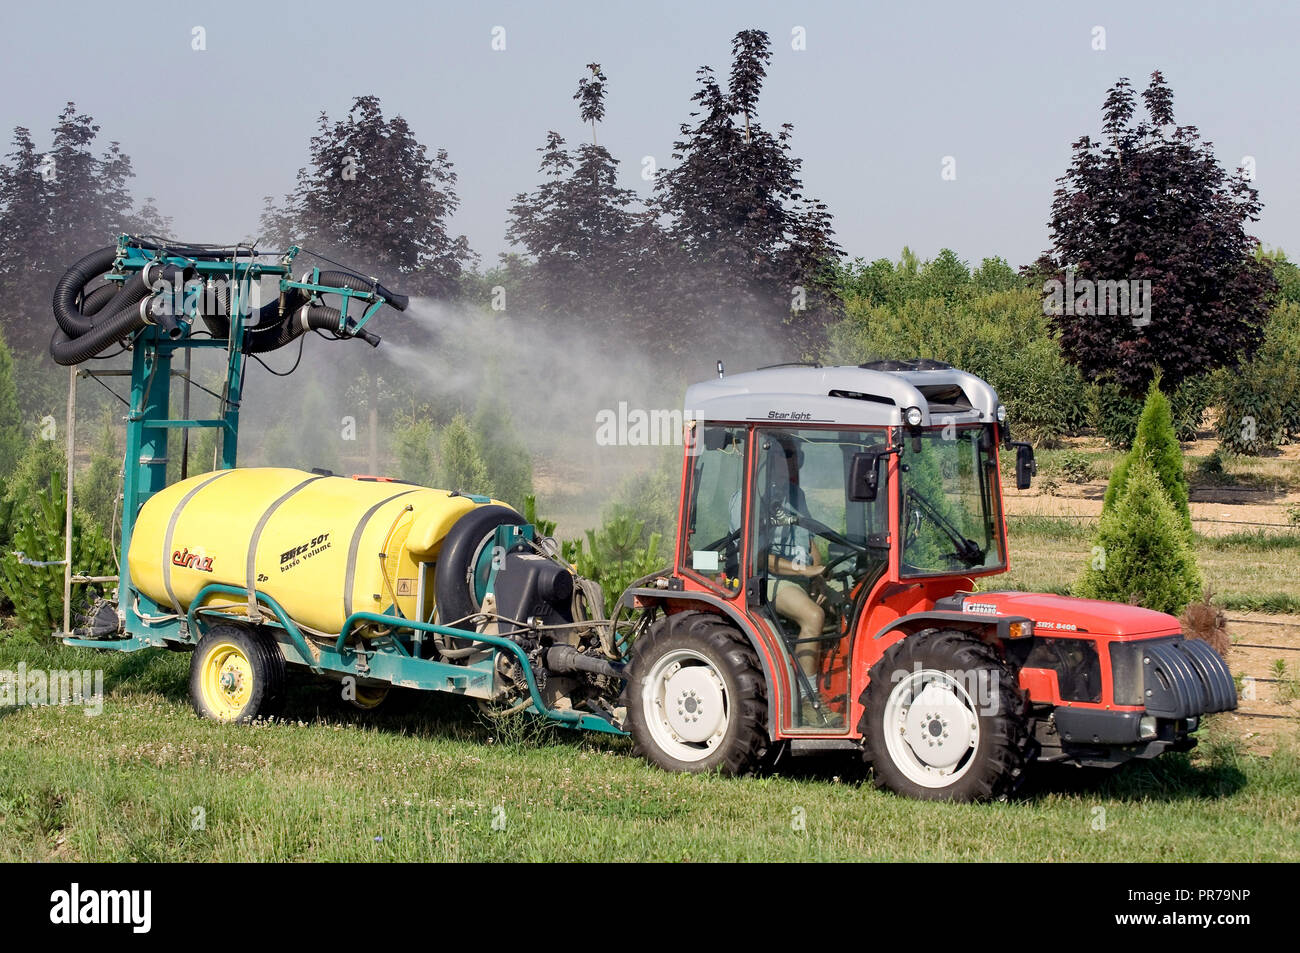 2008 - Farmer driving an Antonio Carraro SRX 8400 tractor and pulling a pesticide sprayer spraying trees on a tree farm (orchard) - Stock Image